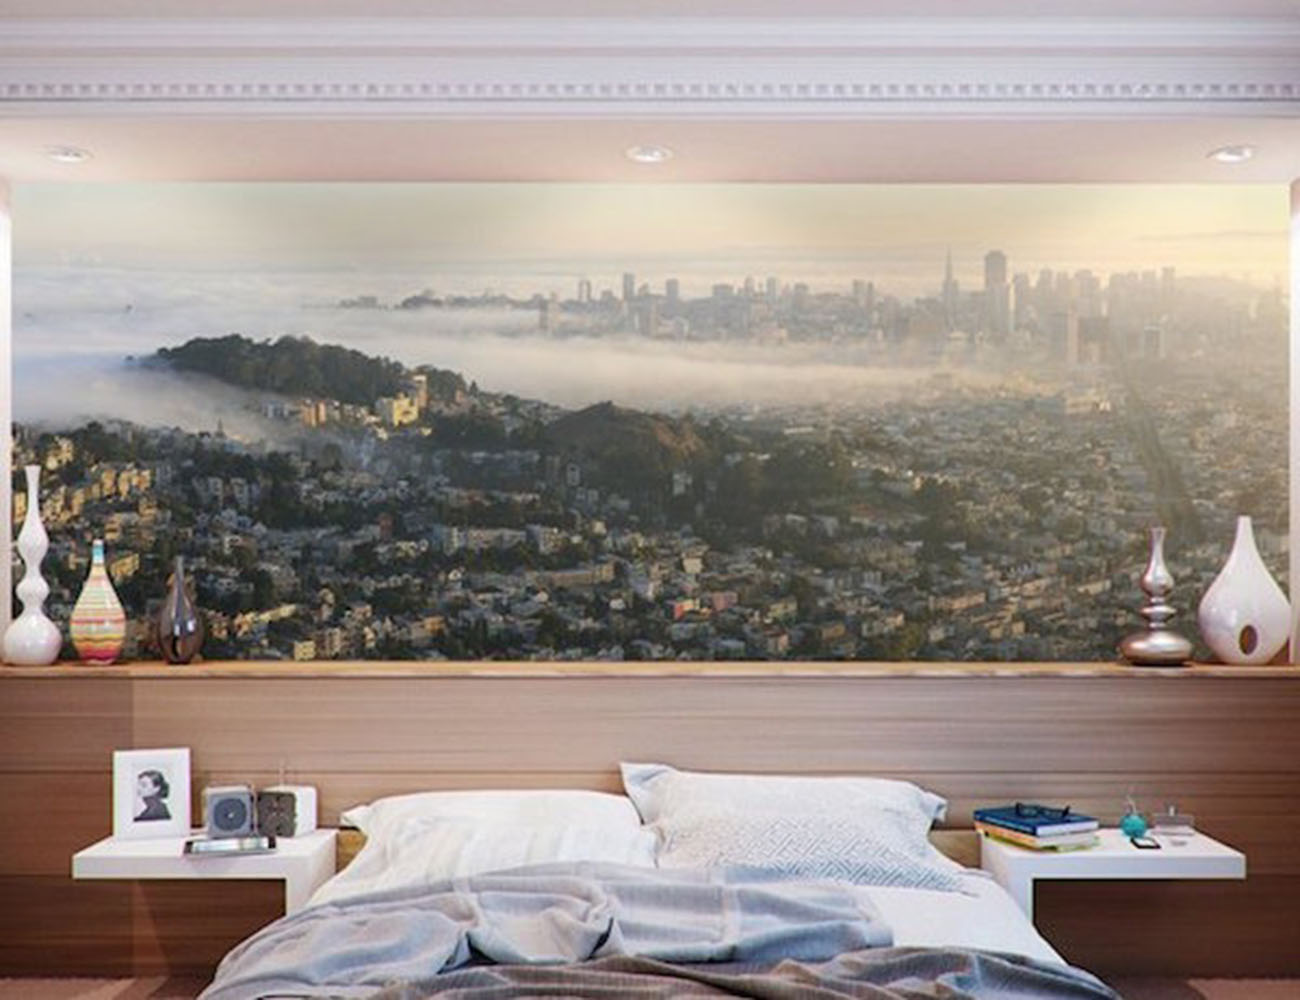 San Francisco Panoramic Skyline Wall Mural by Eazywallz